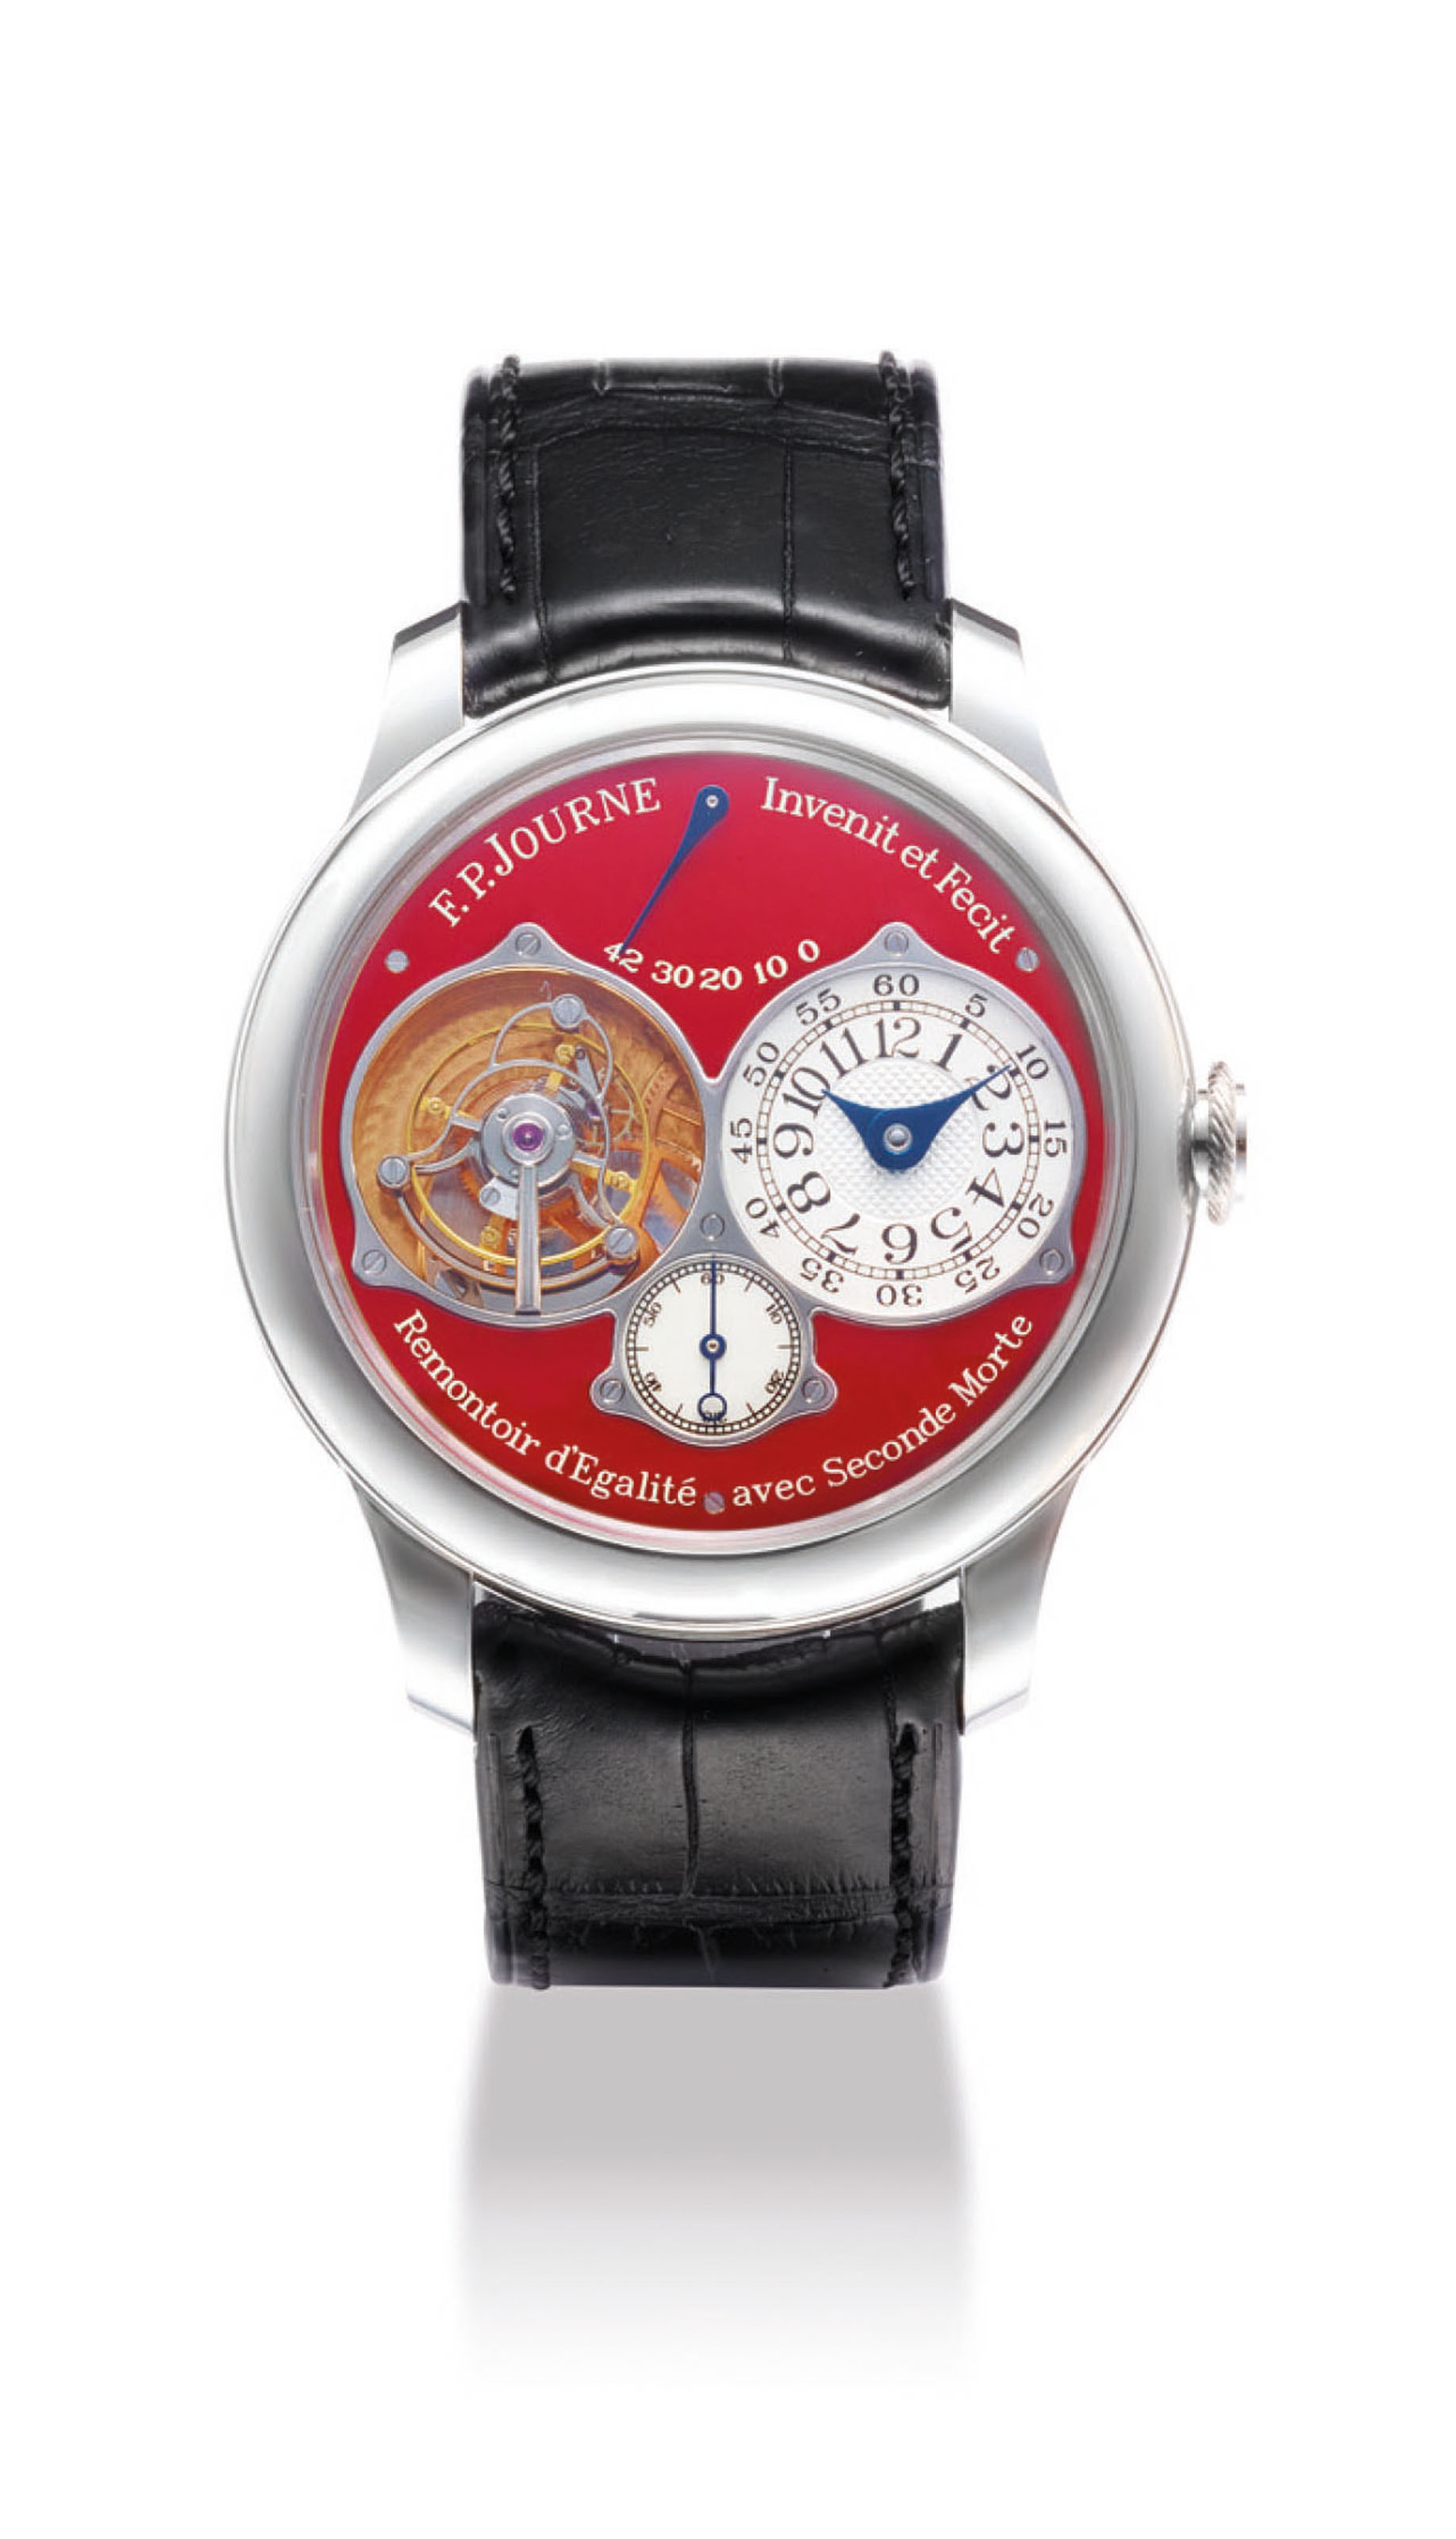 F.P. JOURNE. A FINE AND VERY RARE PLATINUM TOURBILLON WRISTWATCH WITH CONSTANT FORCE WINDING, POWER RESERVE, DEAD BEAT SECONDS AND RED DIAL